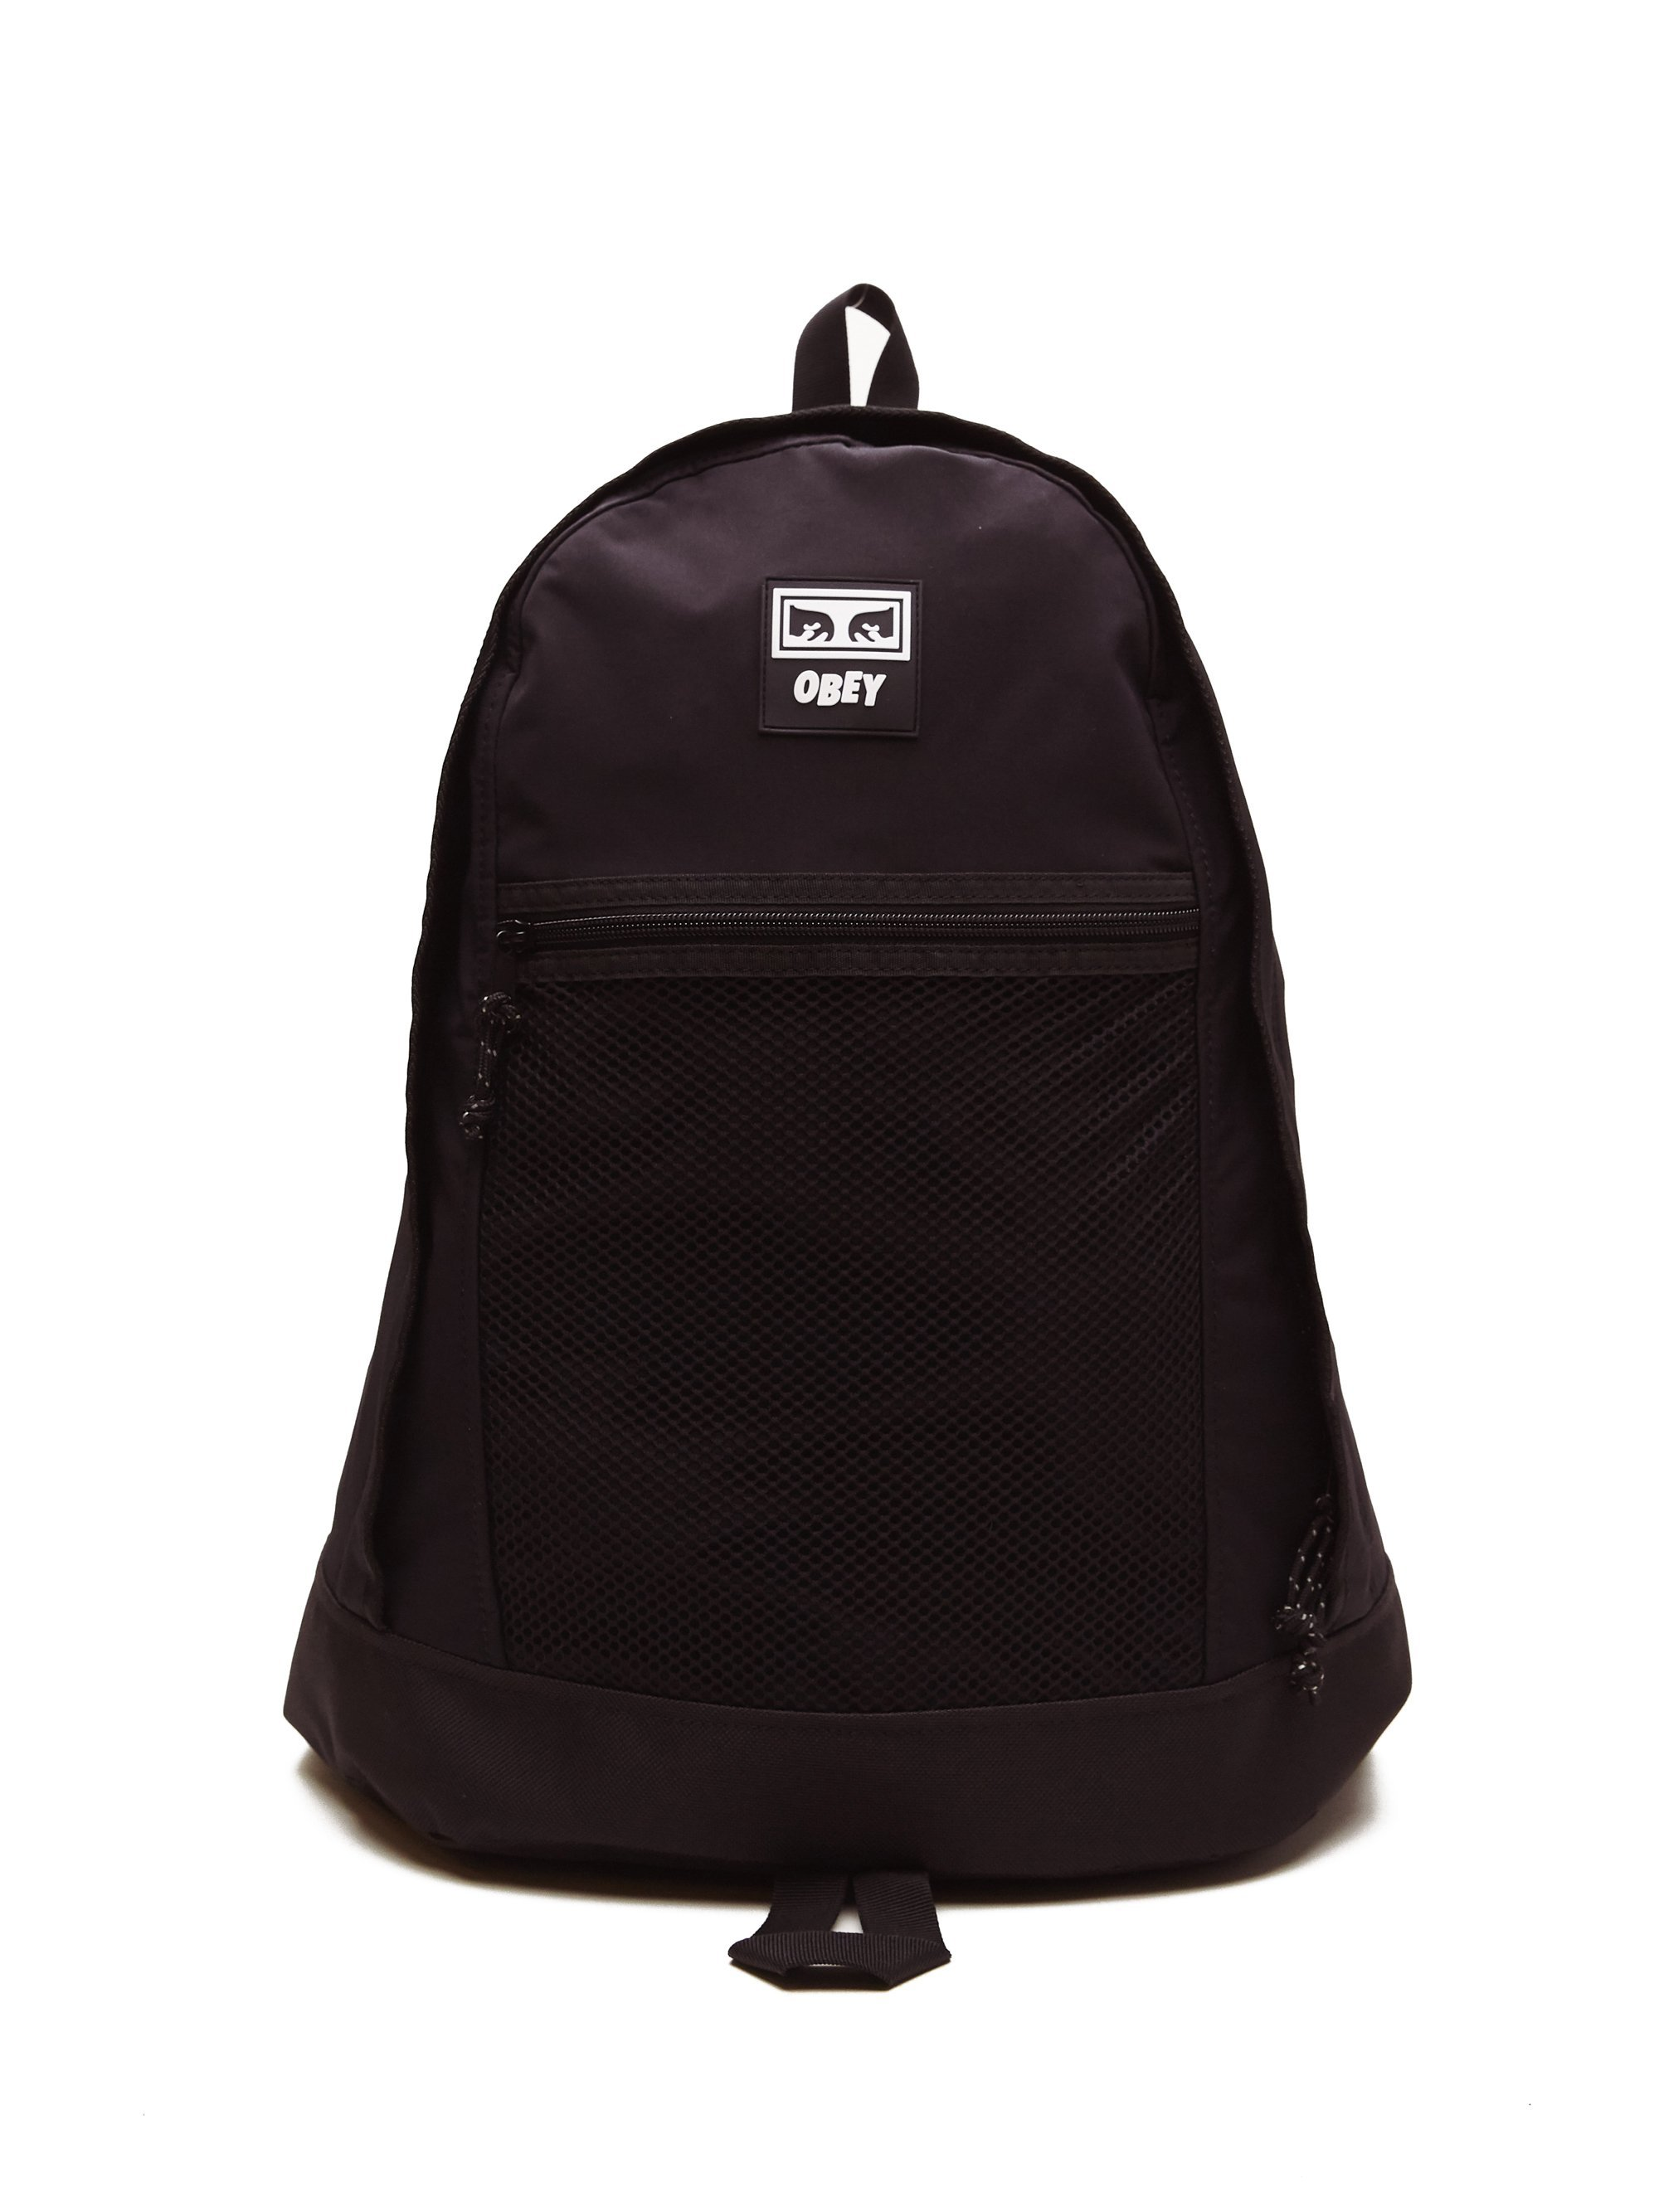 OBEY_Conditions_Day_Pack_100010107_BLK_1_2000x.jpg